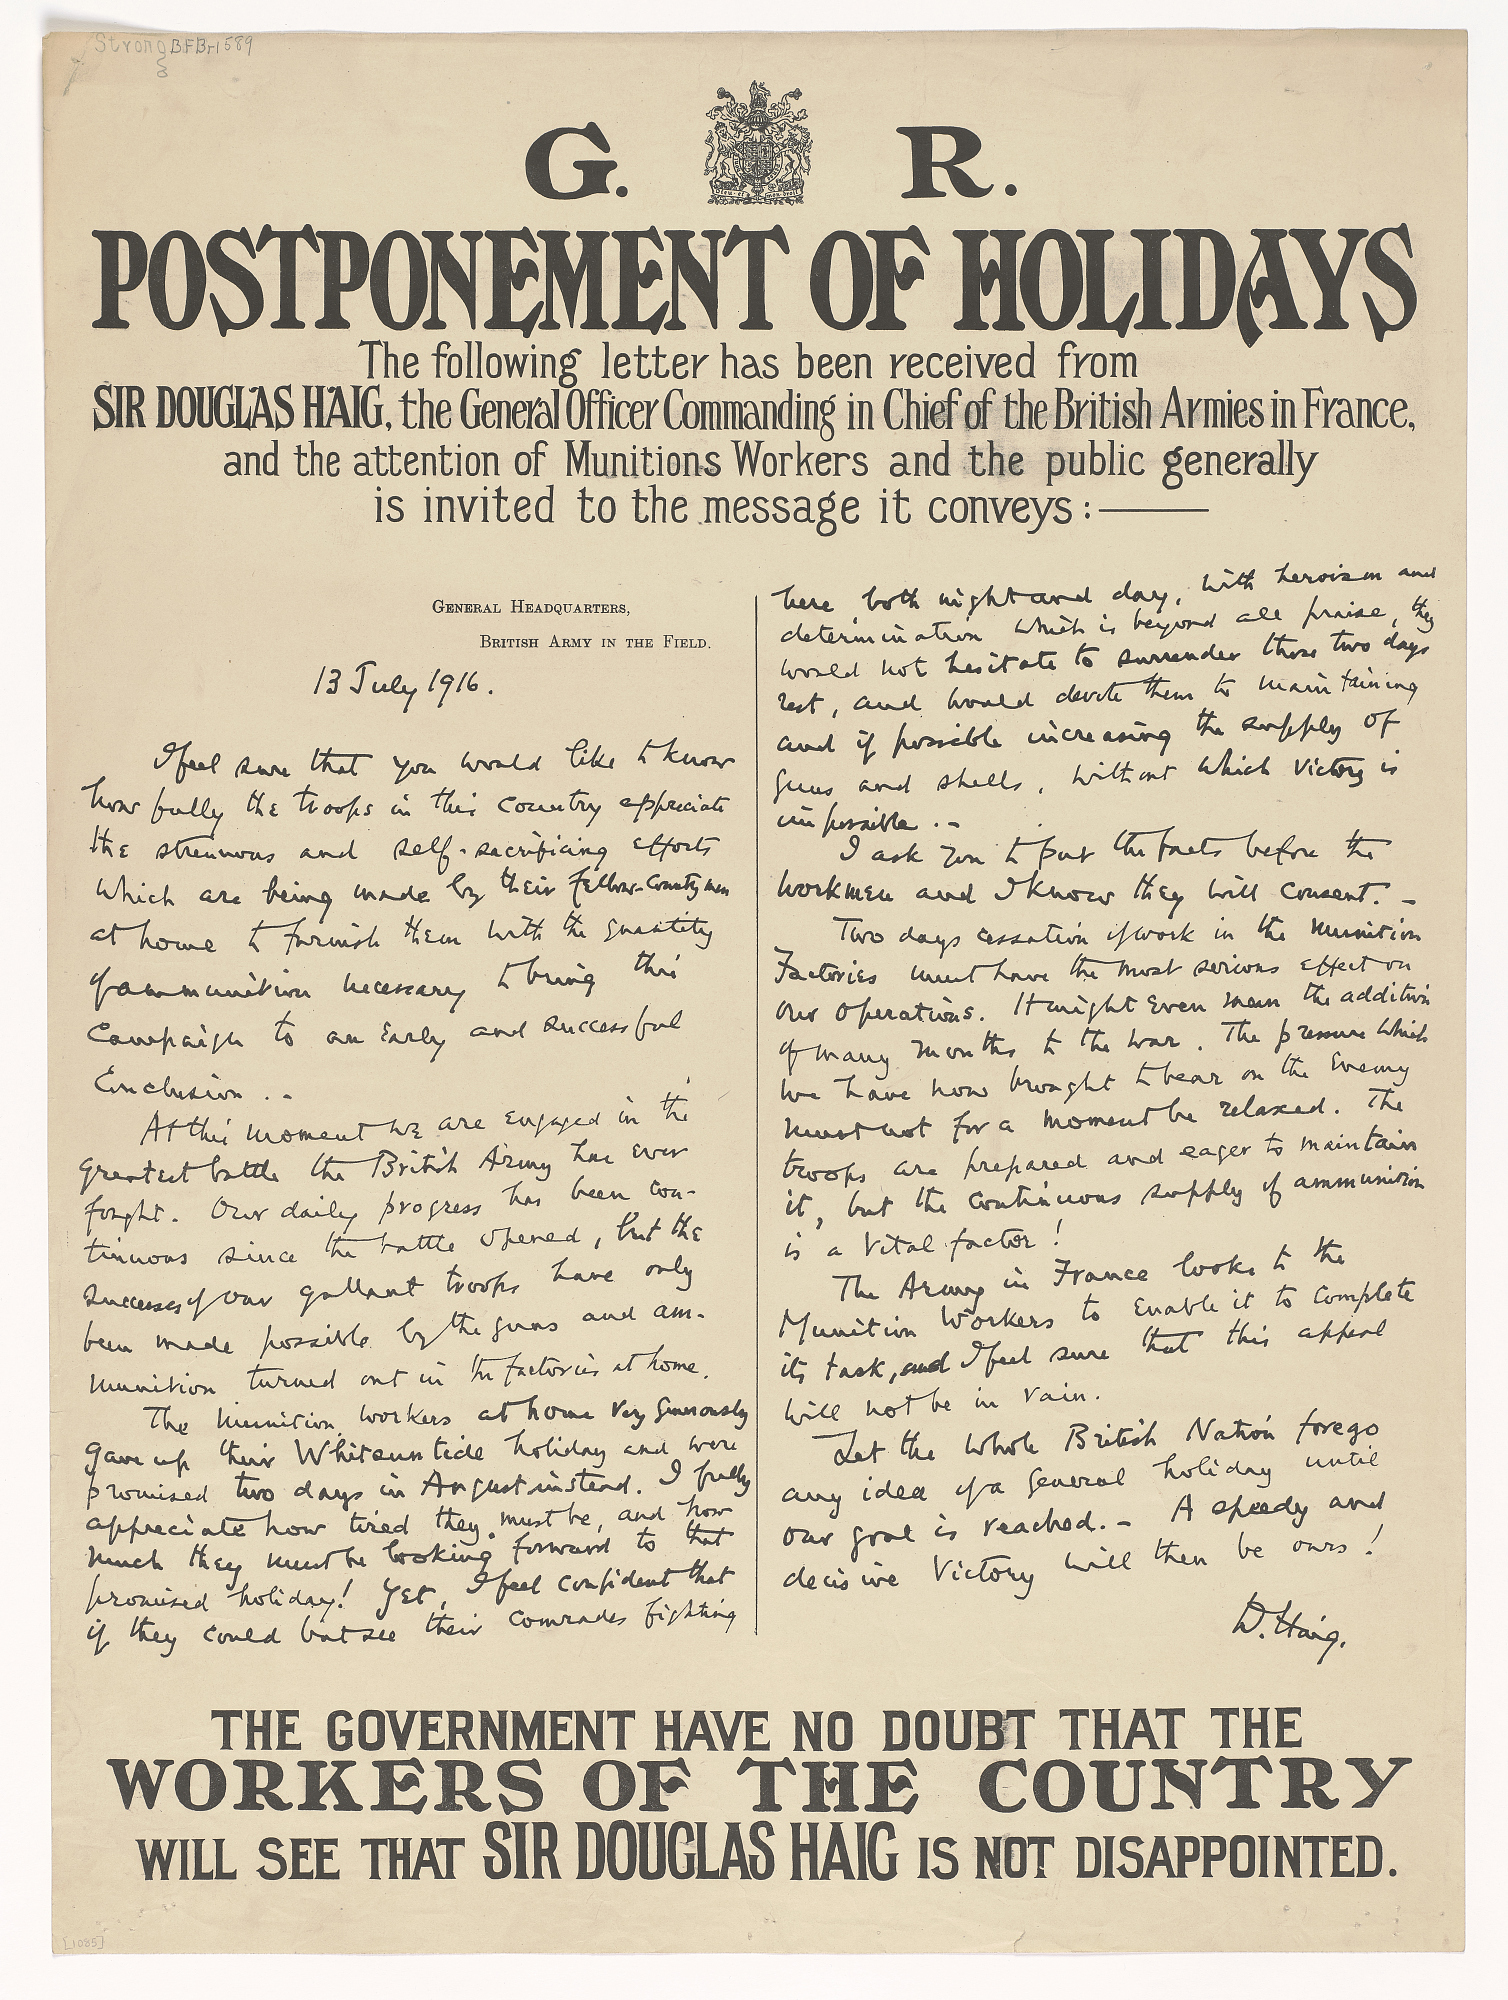 Postponement of Holidays / the Following Letter Has Been Received Fom Sir Douglas Haig, the General Officer in Chief of the British Armies in France, and the Attention of Munitions Workers and the Public Generally is Invited to the Message It Conveys...